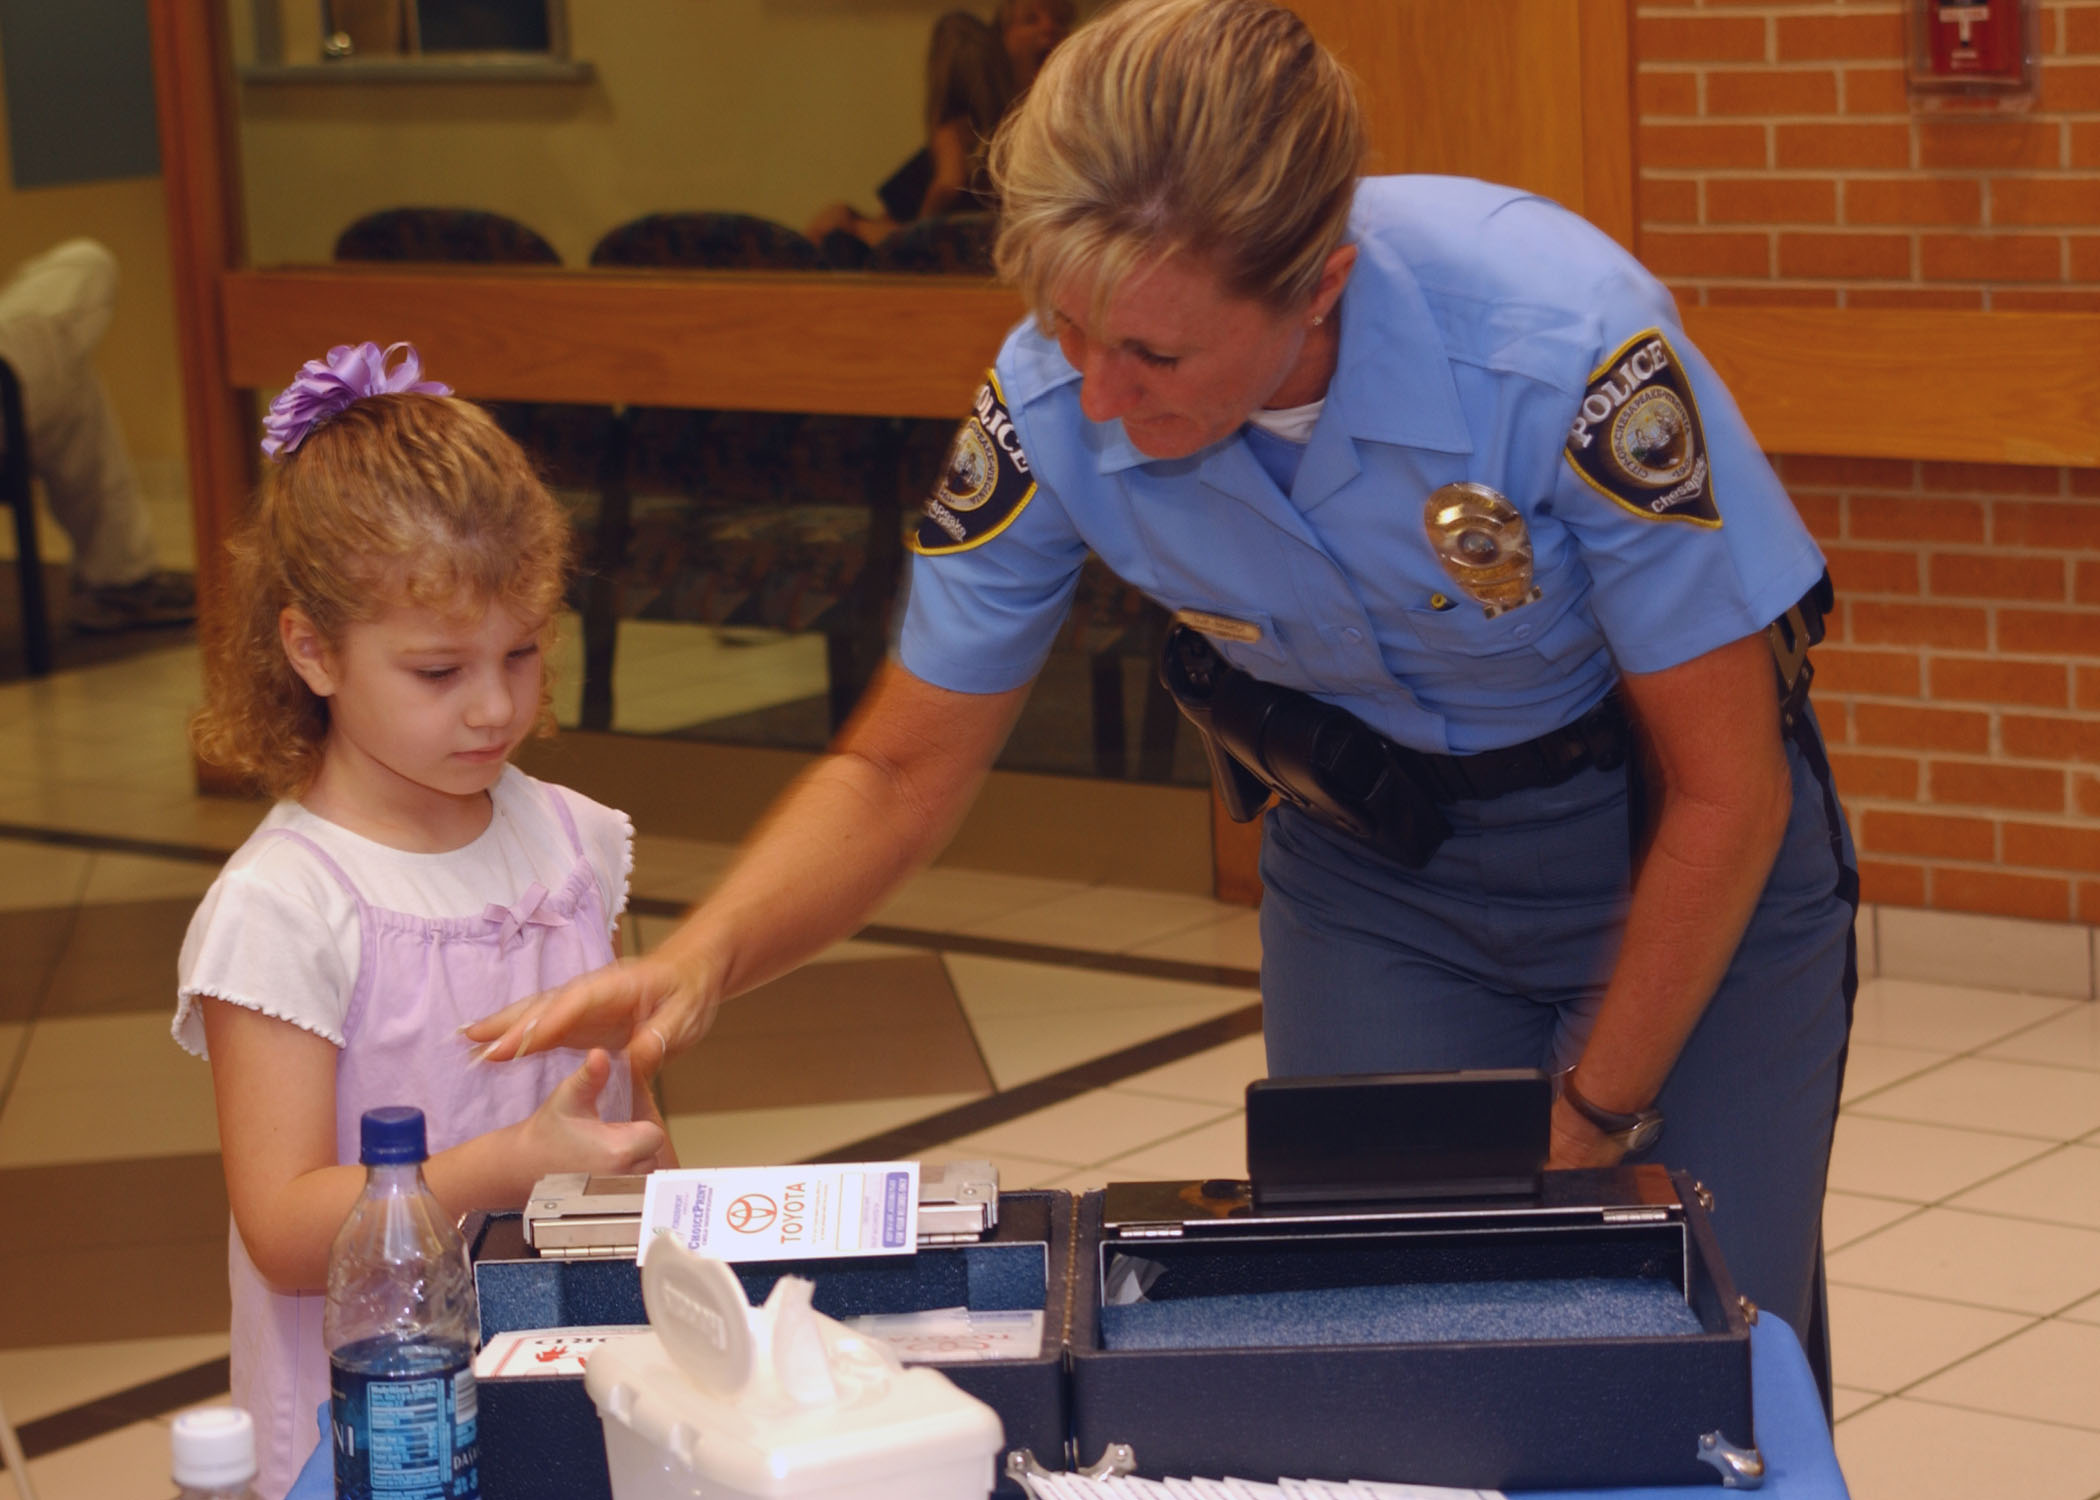 Officer Diane Branch with the Chesapeake Police Department takes children's fingerprints during the Ident-a-Kid program held at Naval Medical Center Portsmouth.